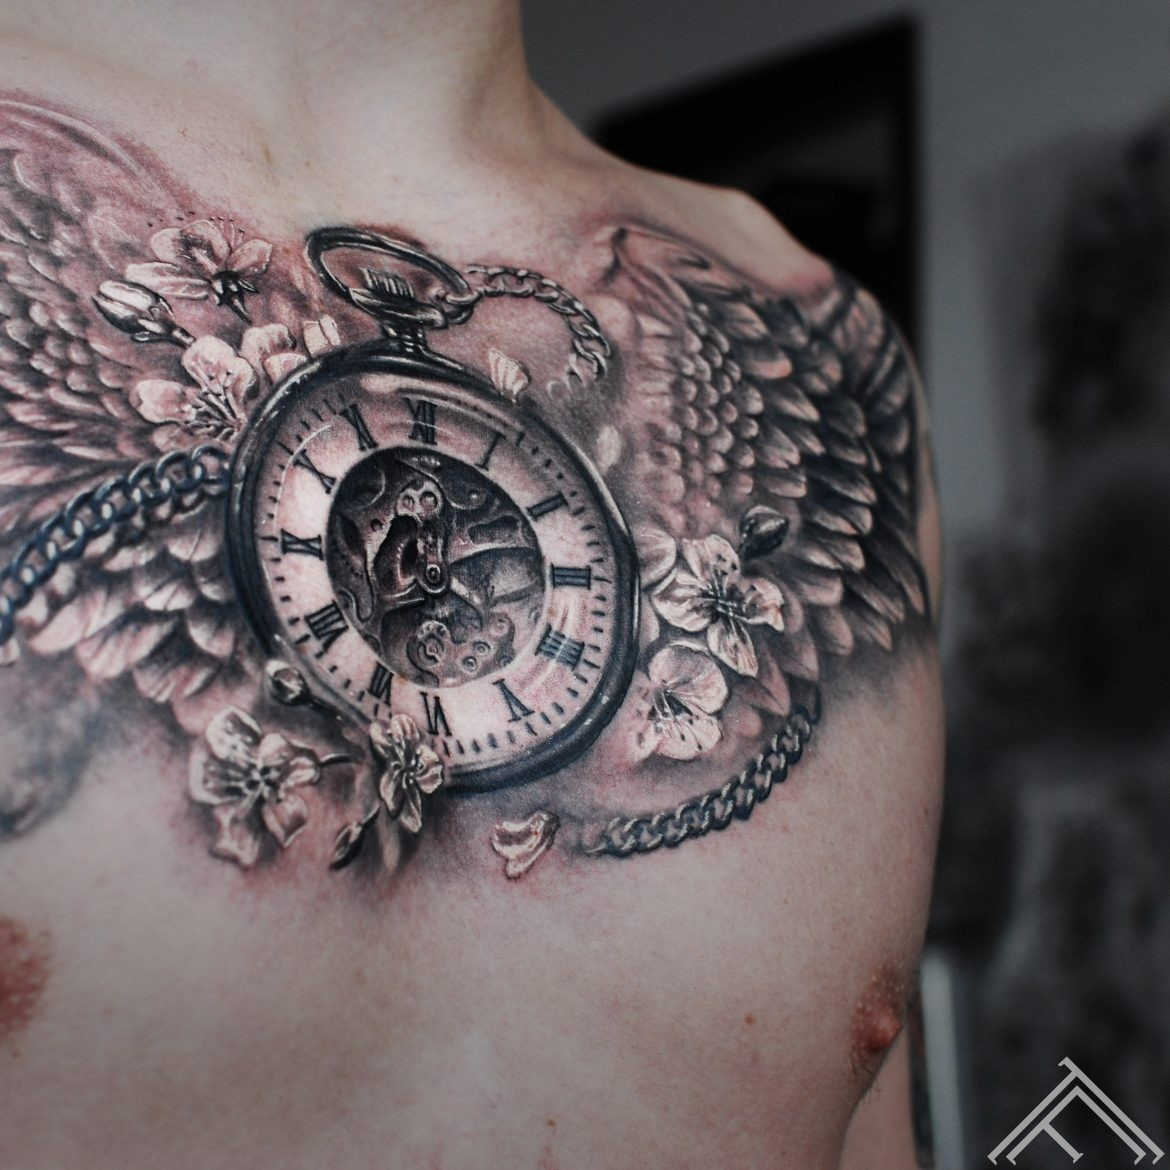 clock-wings-cherrybloosom-sparni-pulkstenis-ziedi-tetovejums-tattoo-riga-tattoofrequency